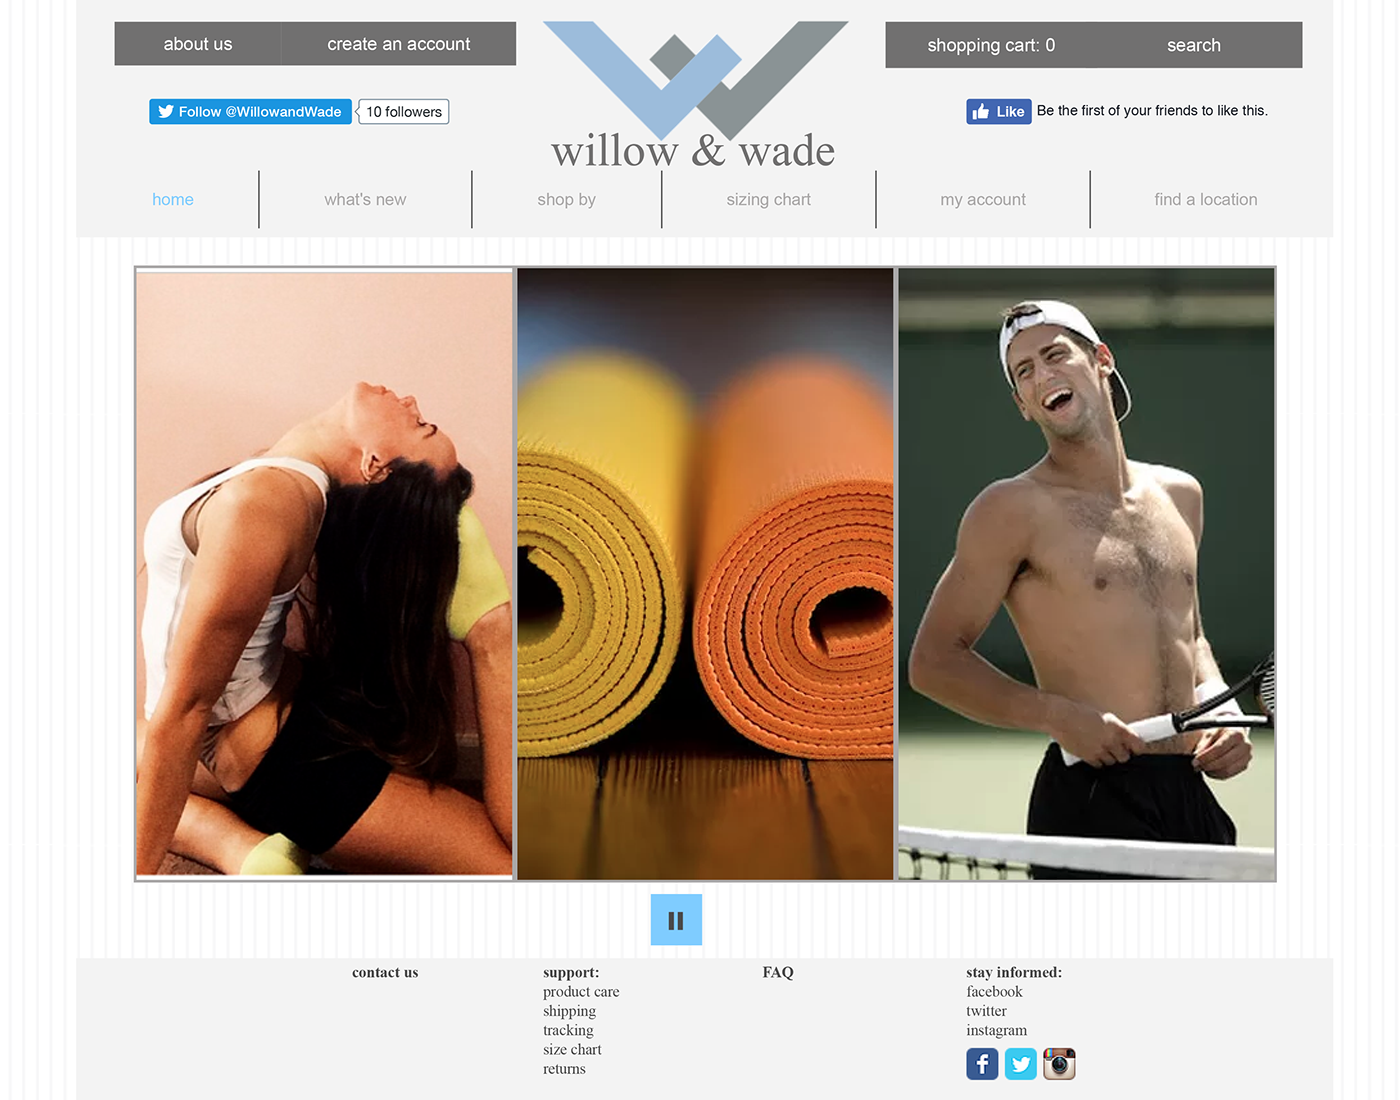 promo finance activewear logo branding  social media wireframe marketing plan Yoga Clothing